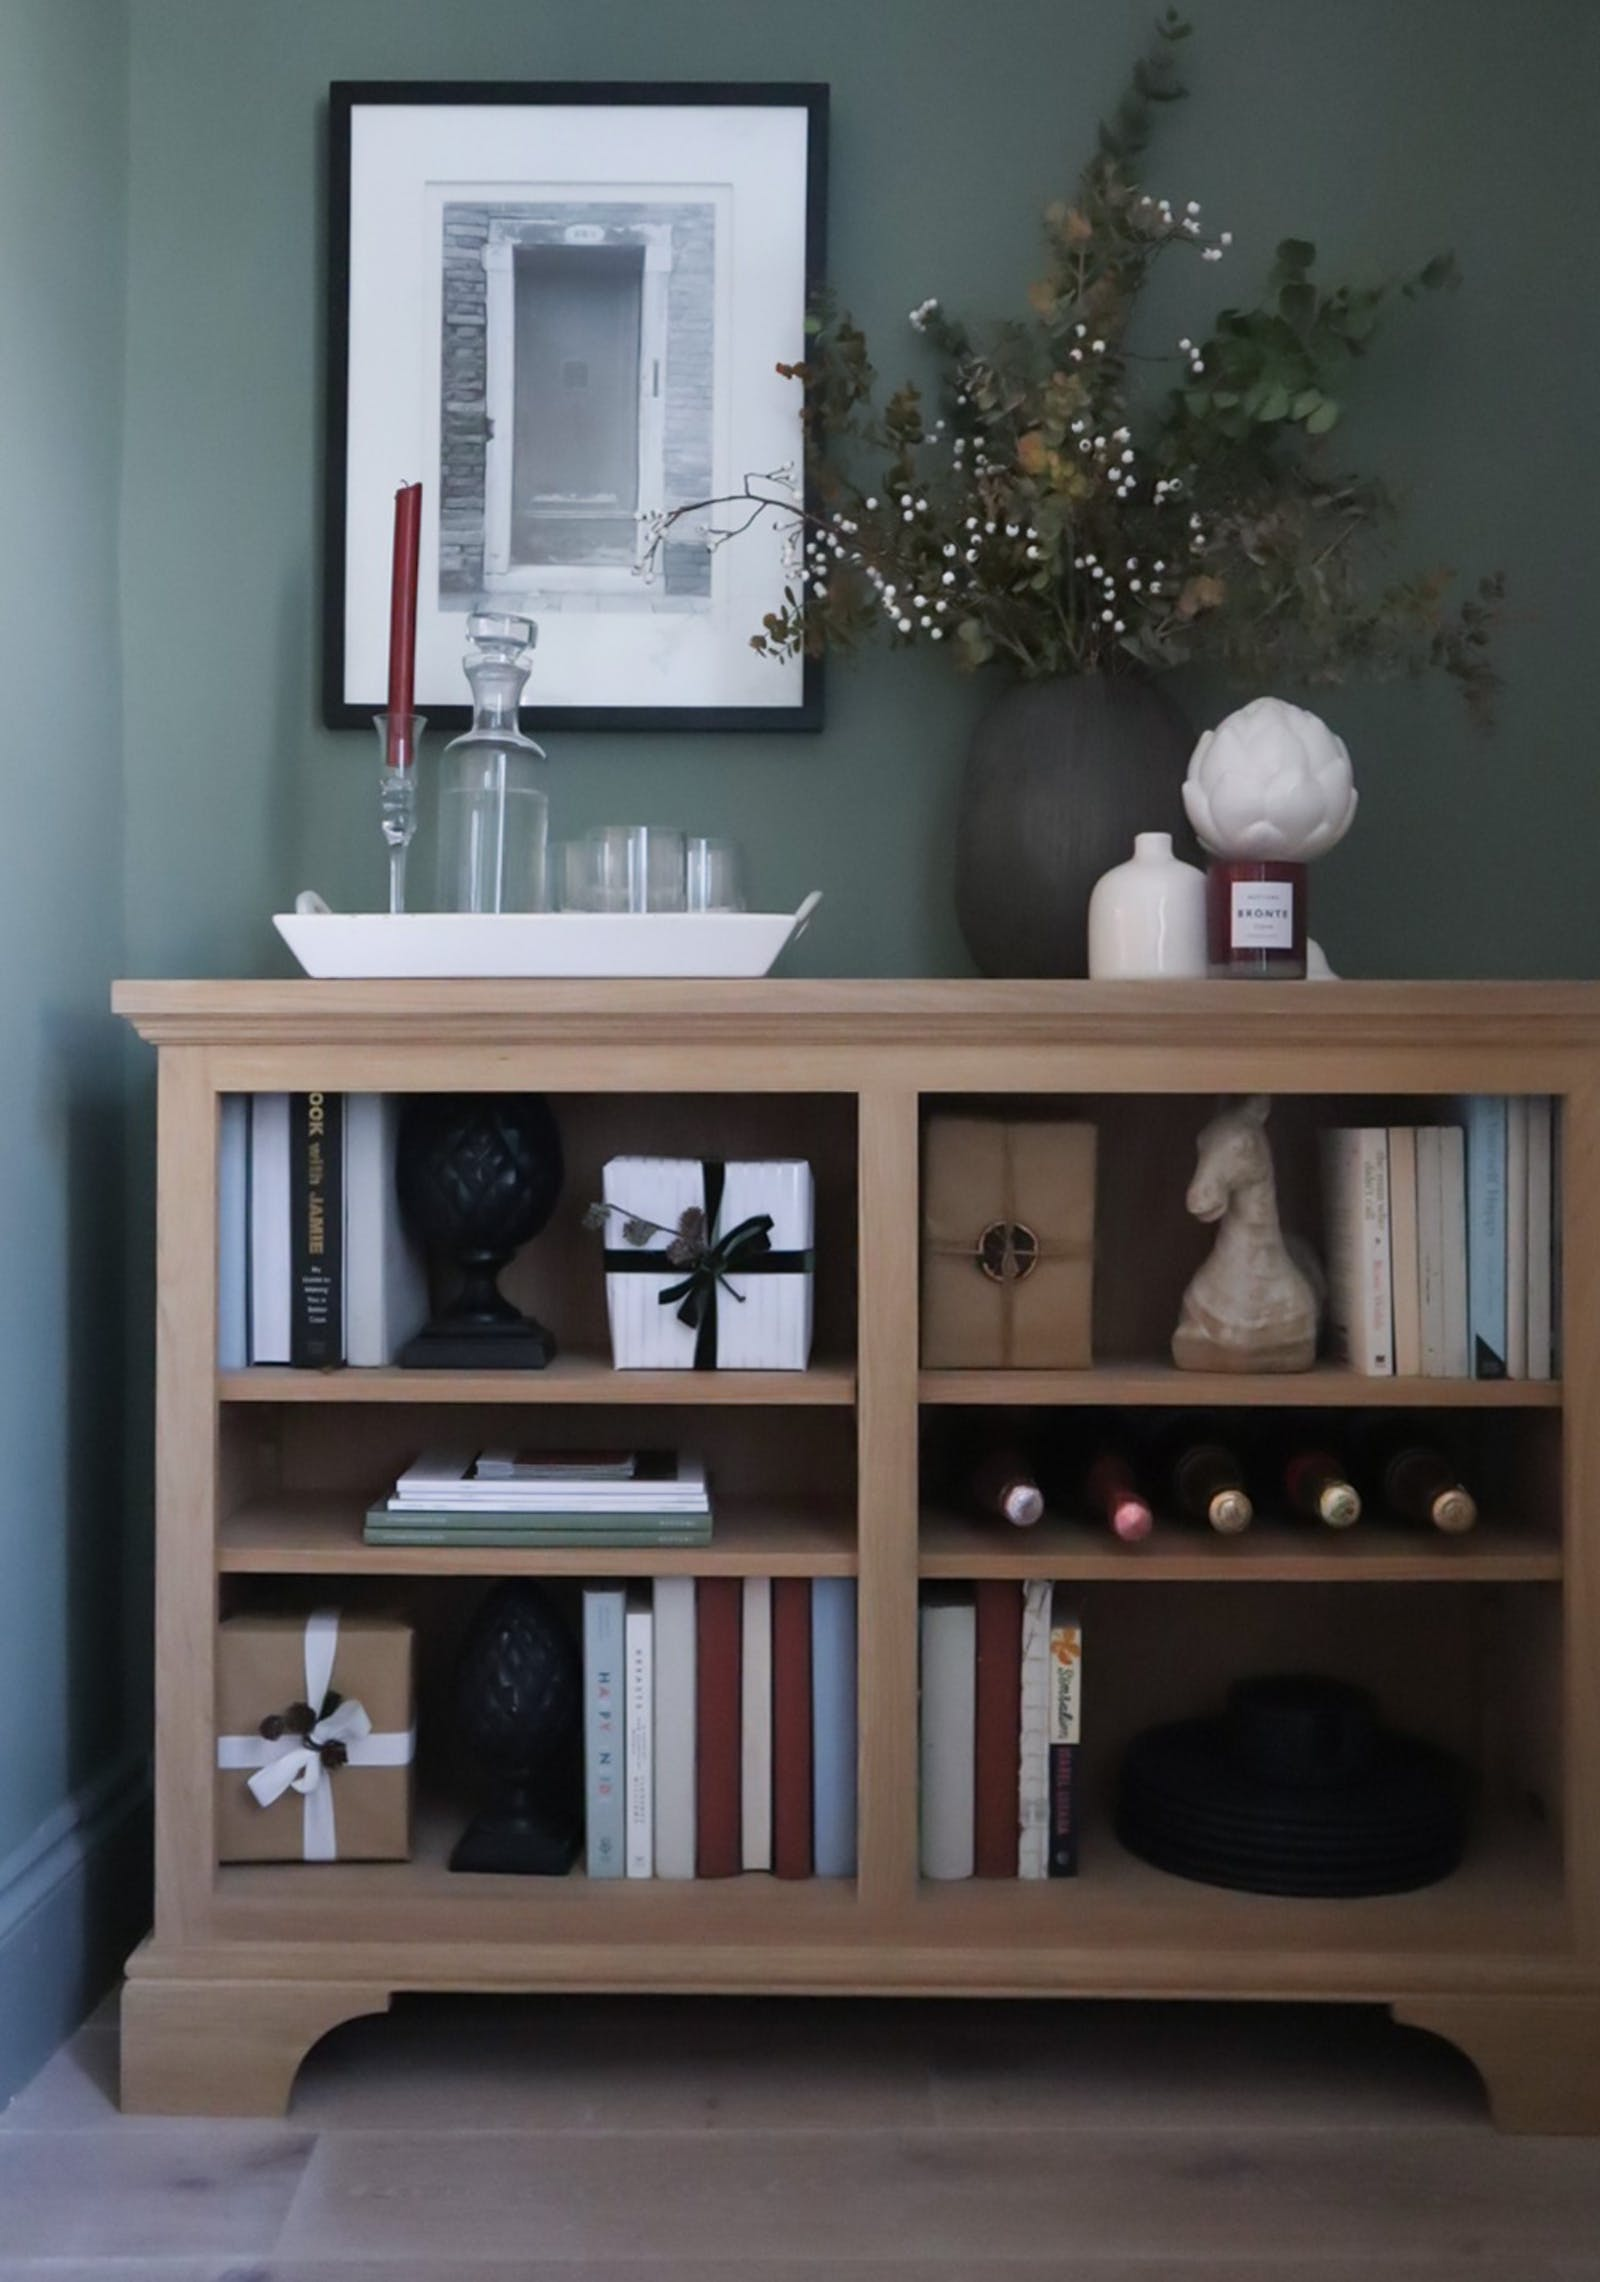 Display bookcase with Christmas presents and candle decorations